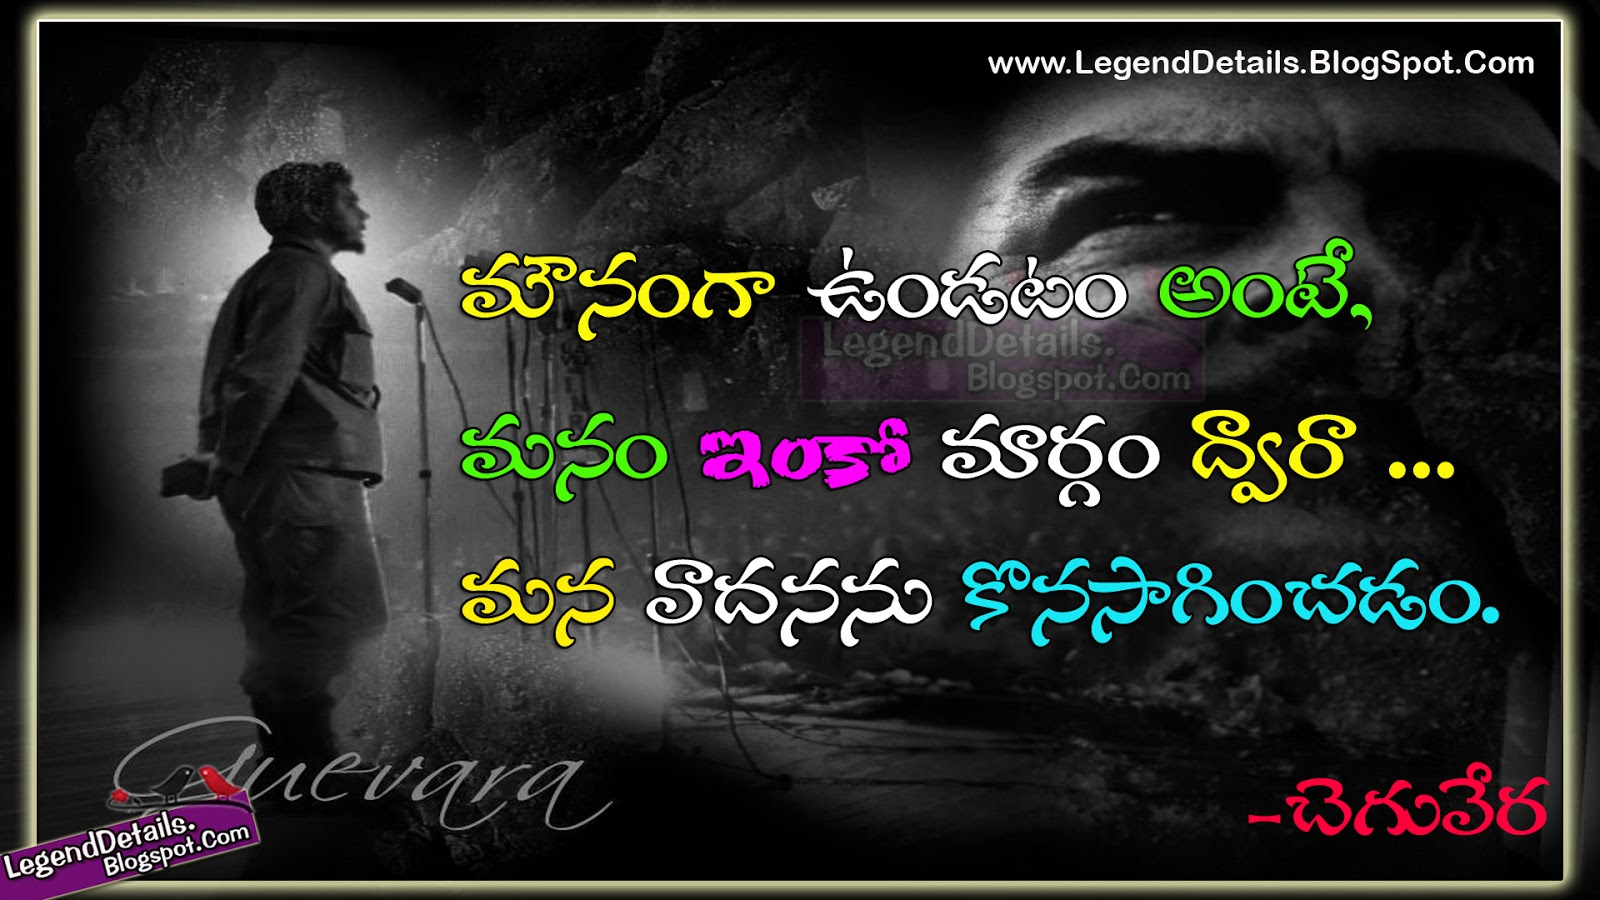 K Che Inspiration che guevara inspirational quotes in telugu legendary quotes